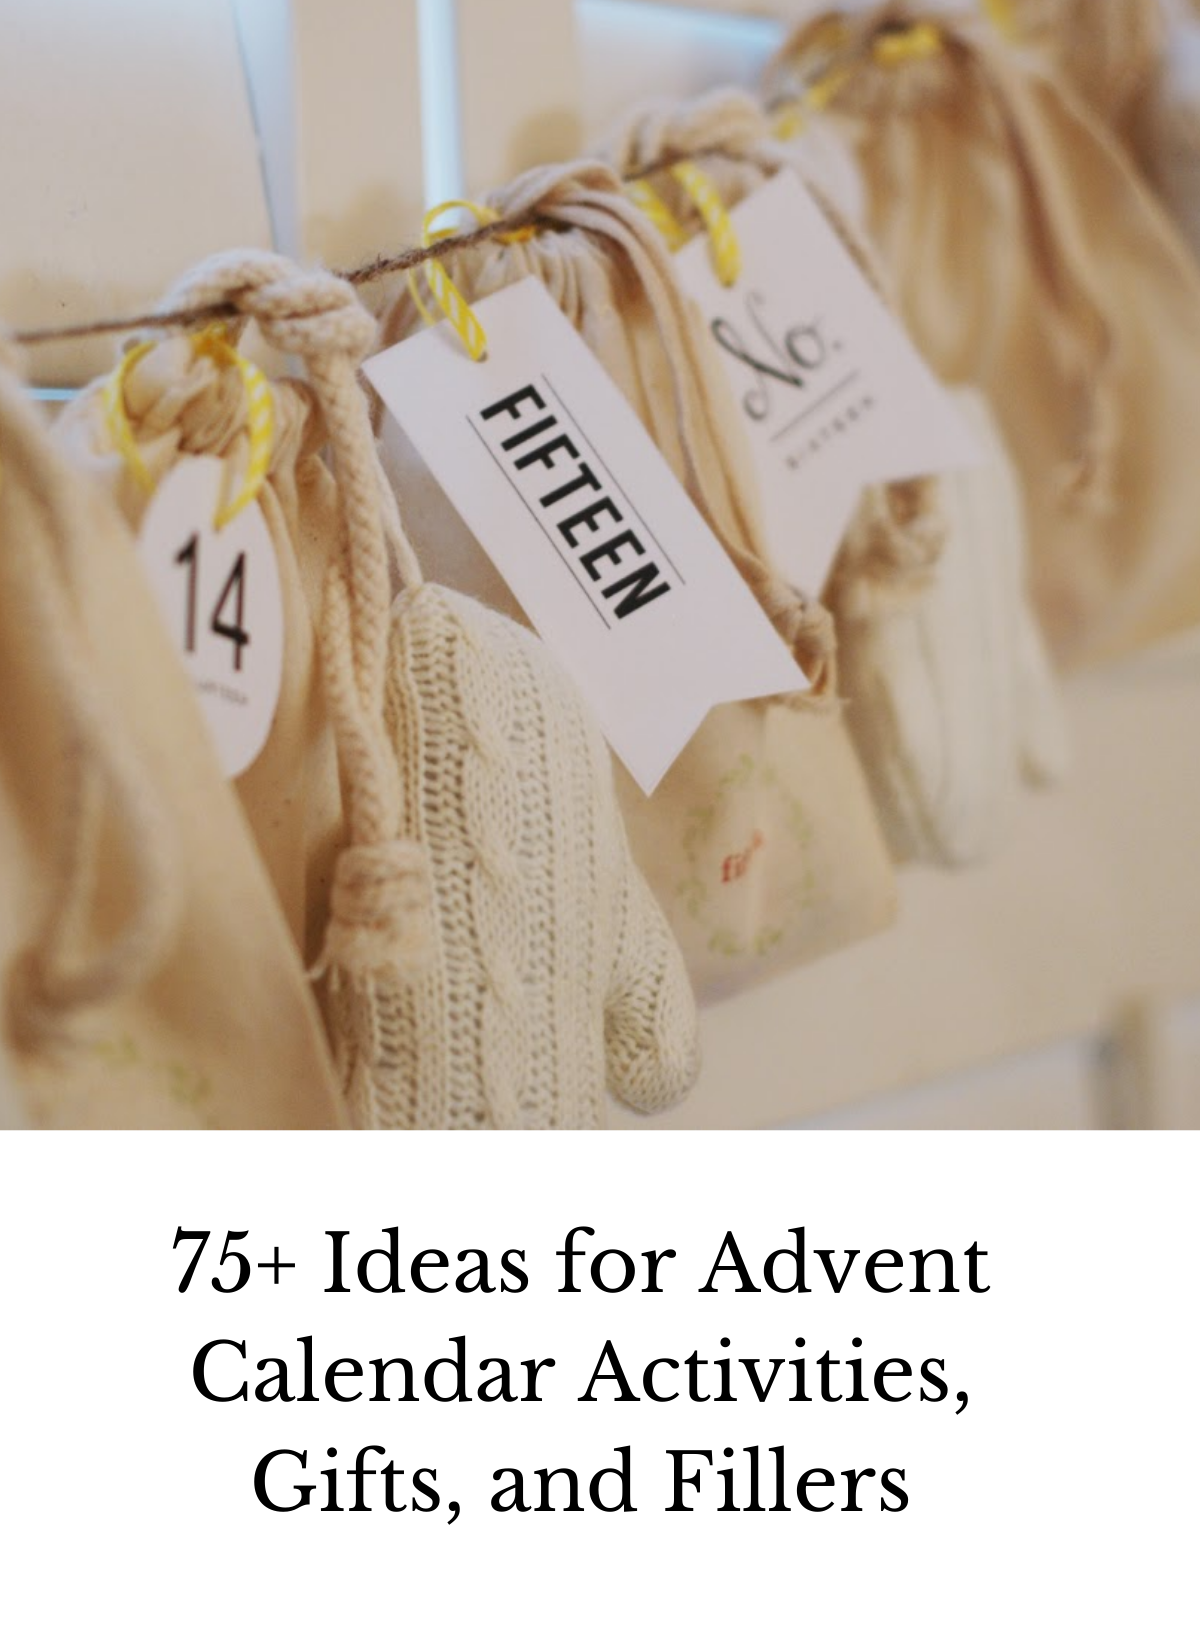 ideas for advent activities fillers gifts